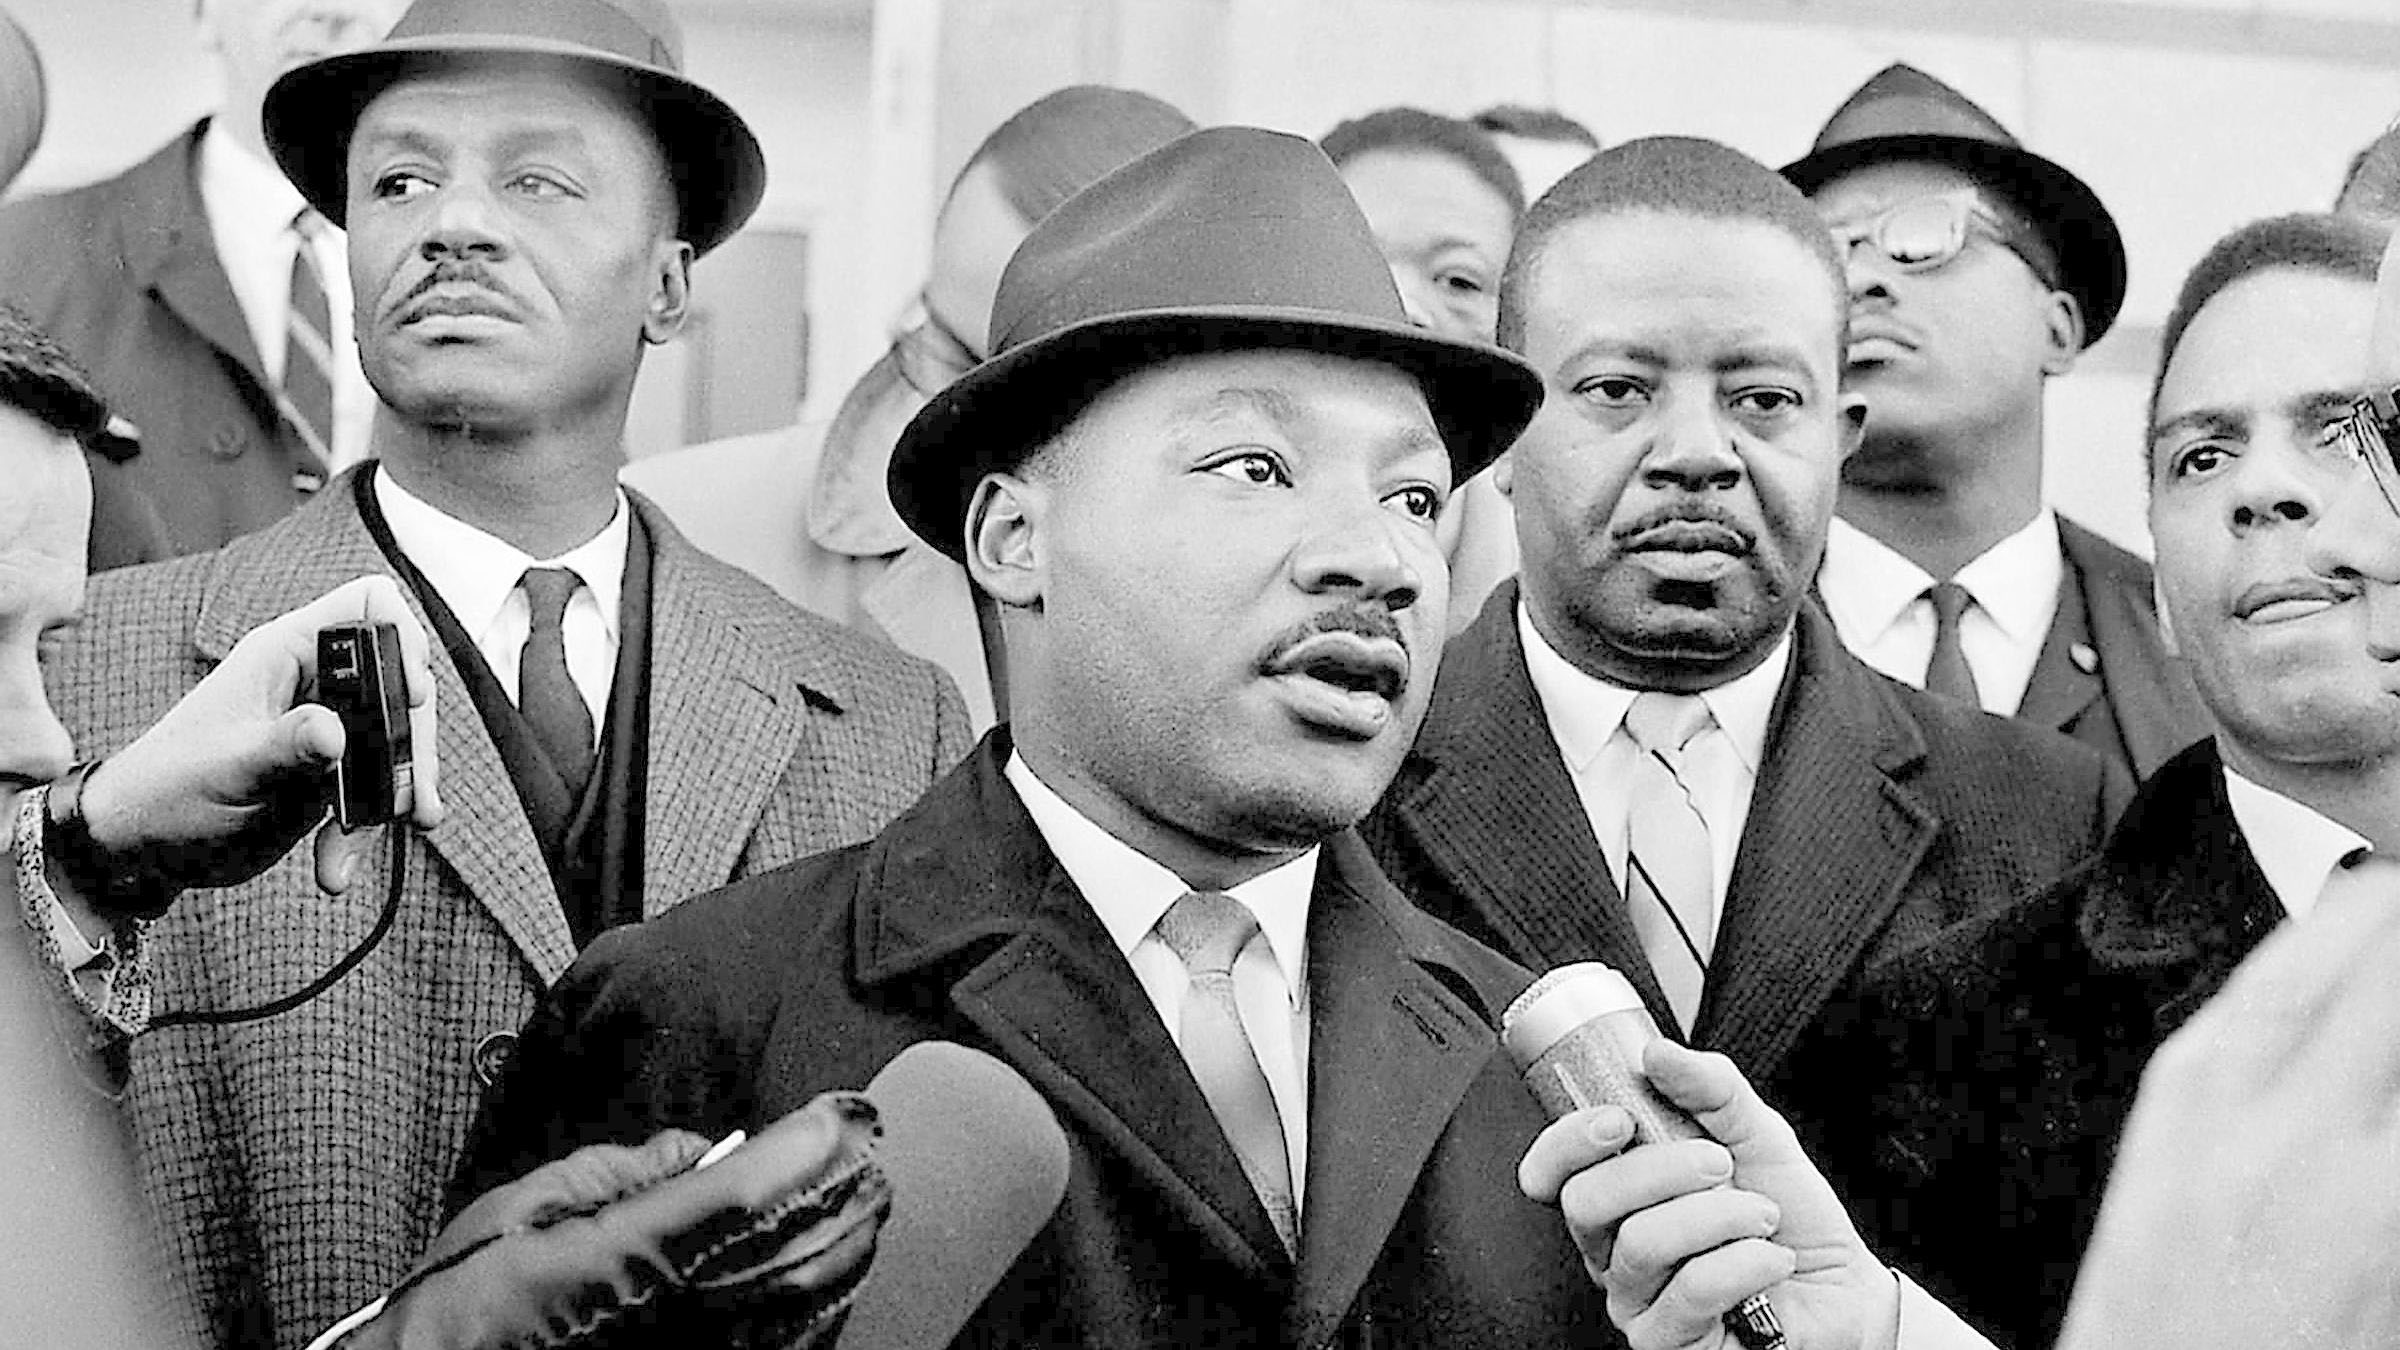 Mlk Assassination likewise Bob Adelman Obit Martin Luther King together with Ab Ae Feb A Eea Dea F C likewise Martin Luther King Rolex together with King Pool  Ecf Aae F. on in memoriam martin luther king